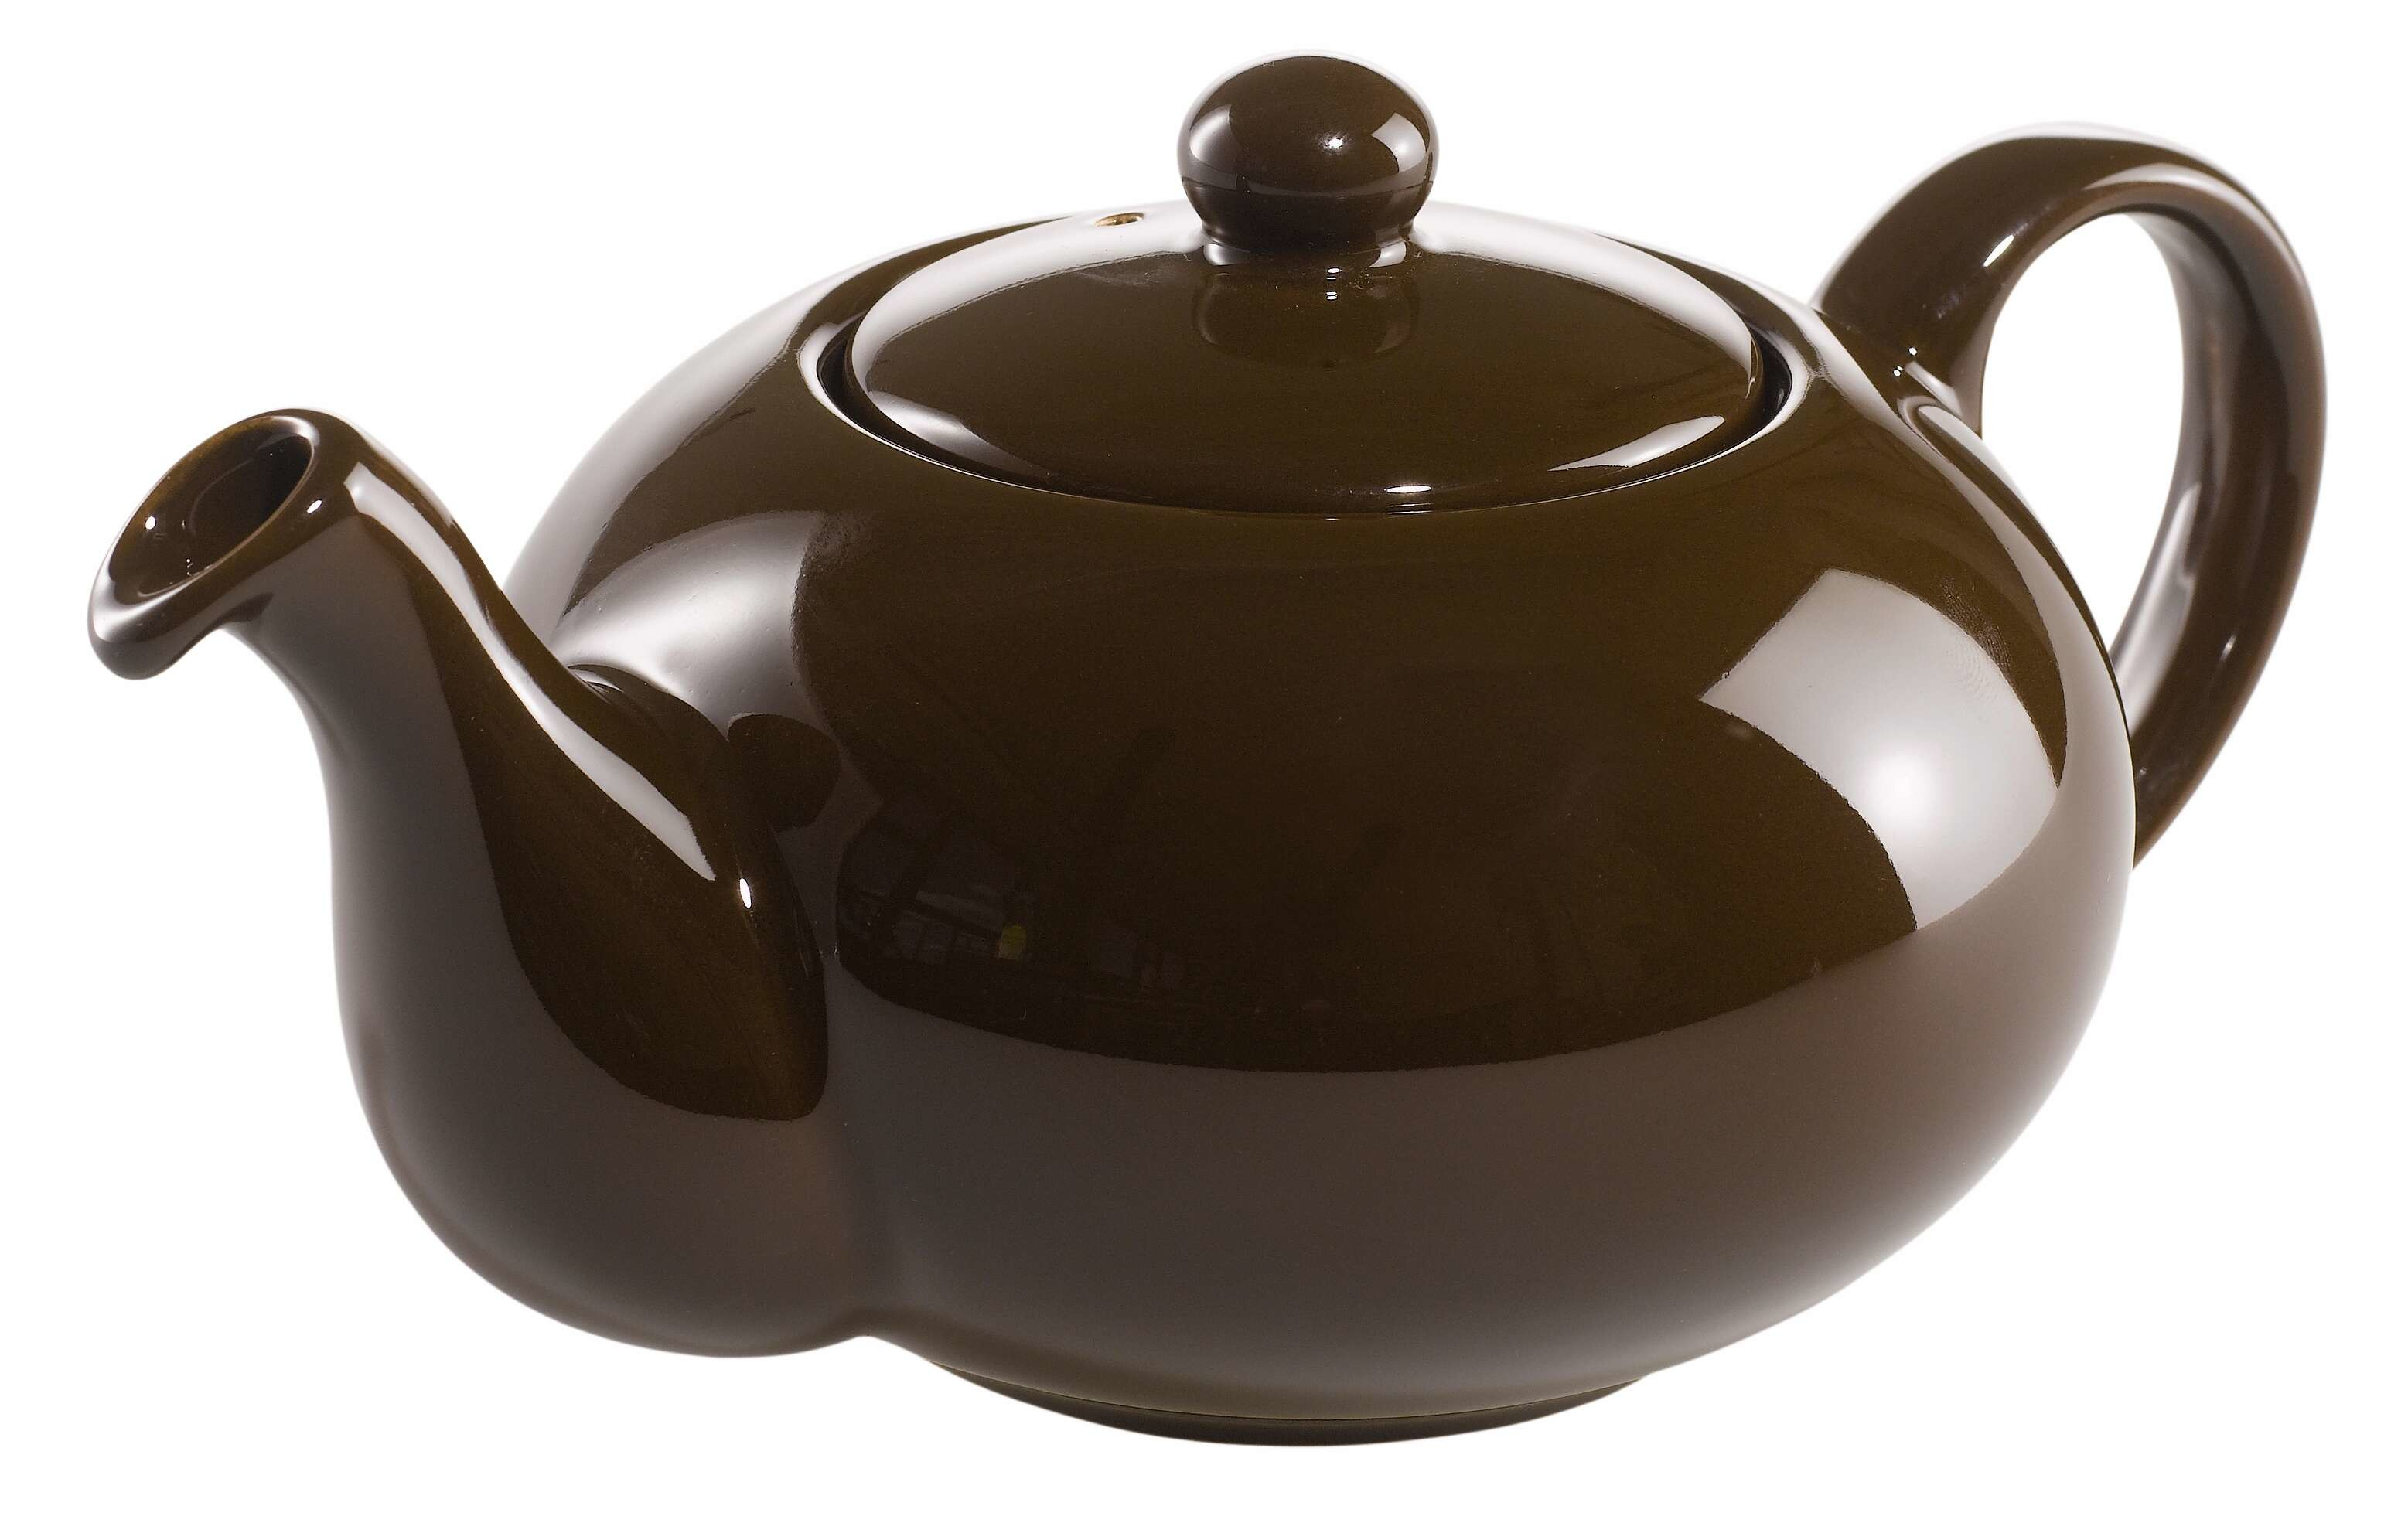 3114x1992 4705_Chocolate-teapot-HD-wallpaper